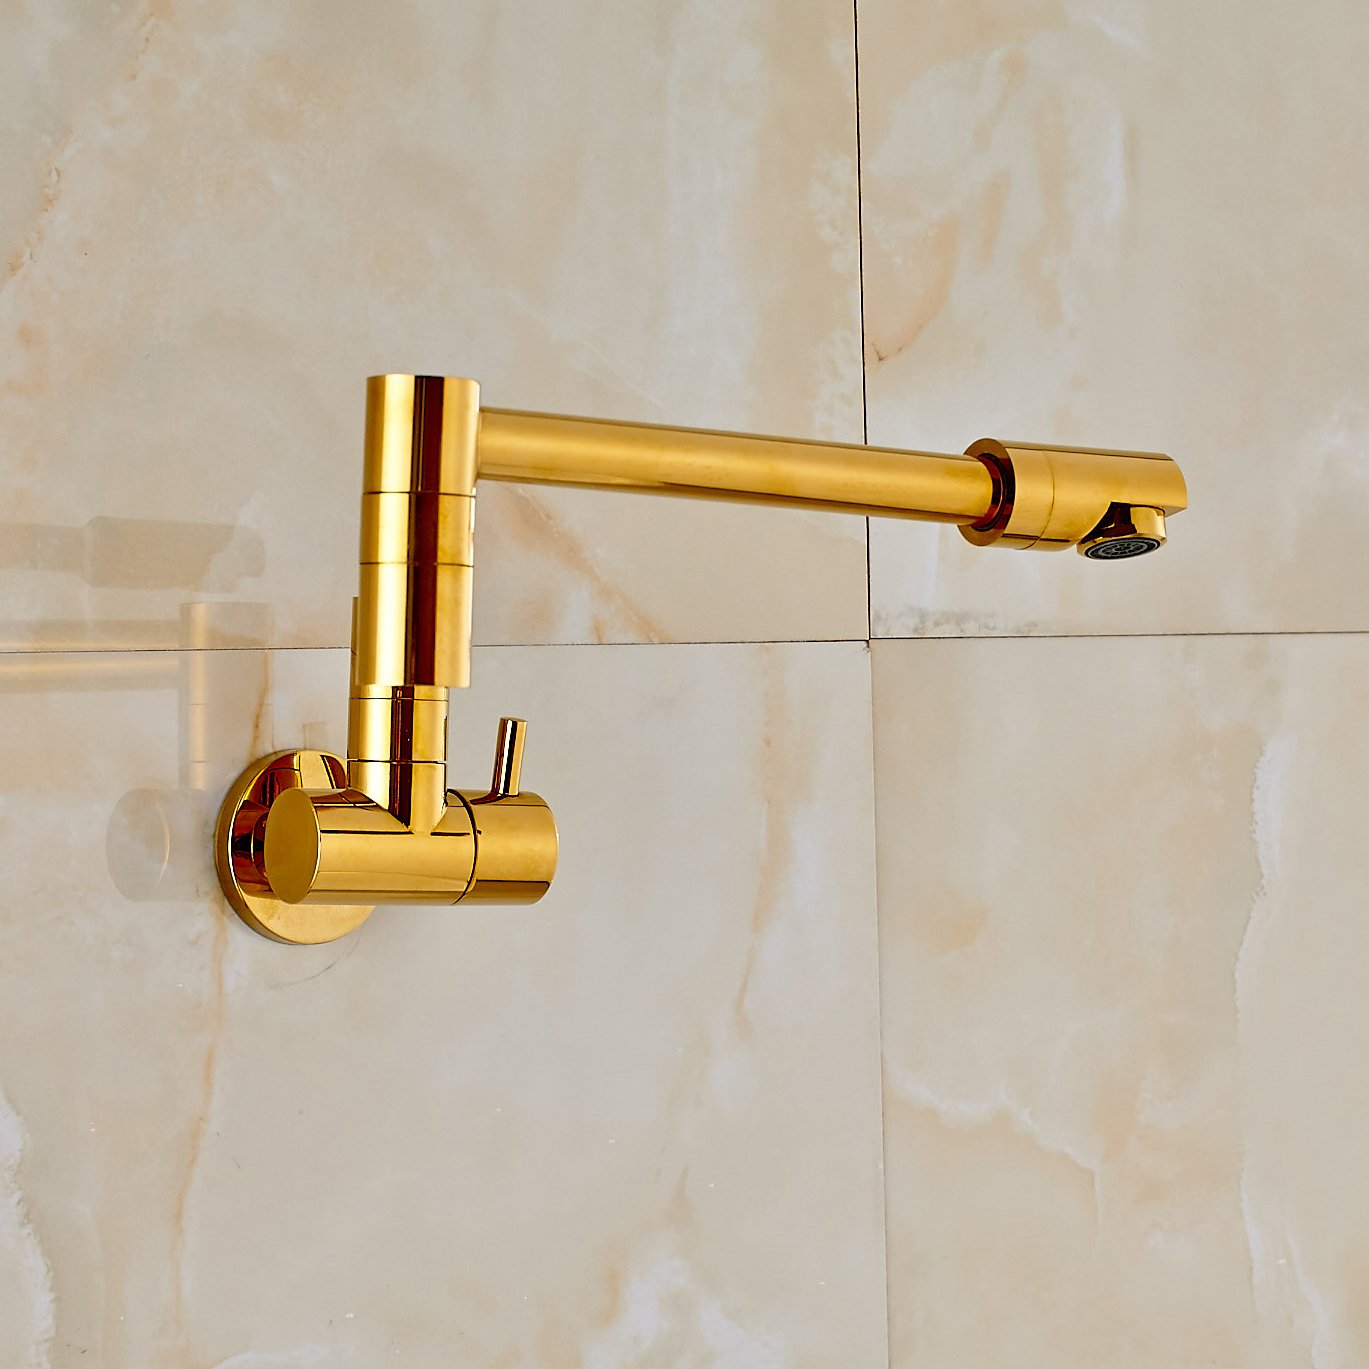 4-Inch Wrist Action Handles 1//4 Turn Eternas 2.2 GPM Aerator T/&S Brass B-0890-QT  4-Inch Centerset Mixing Faucet